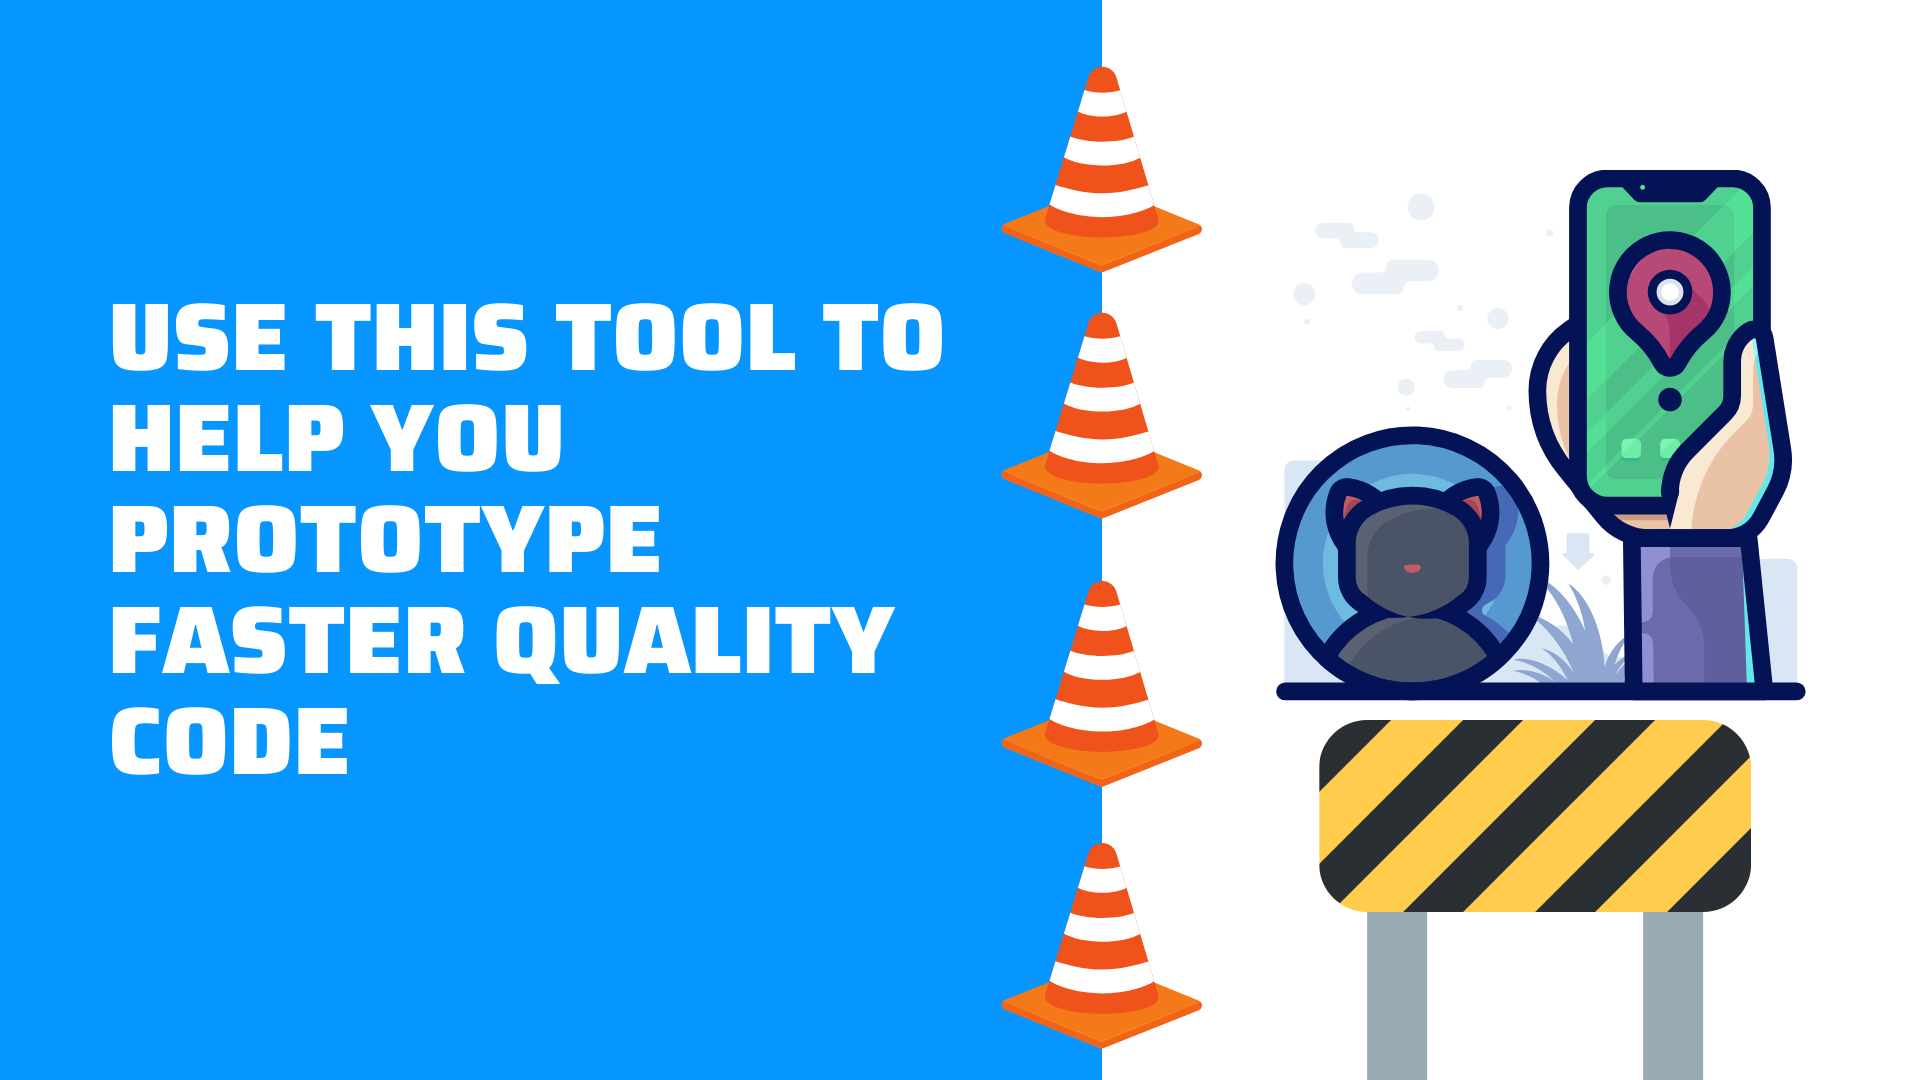 Use this tool to help you prototype faster quality code